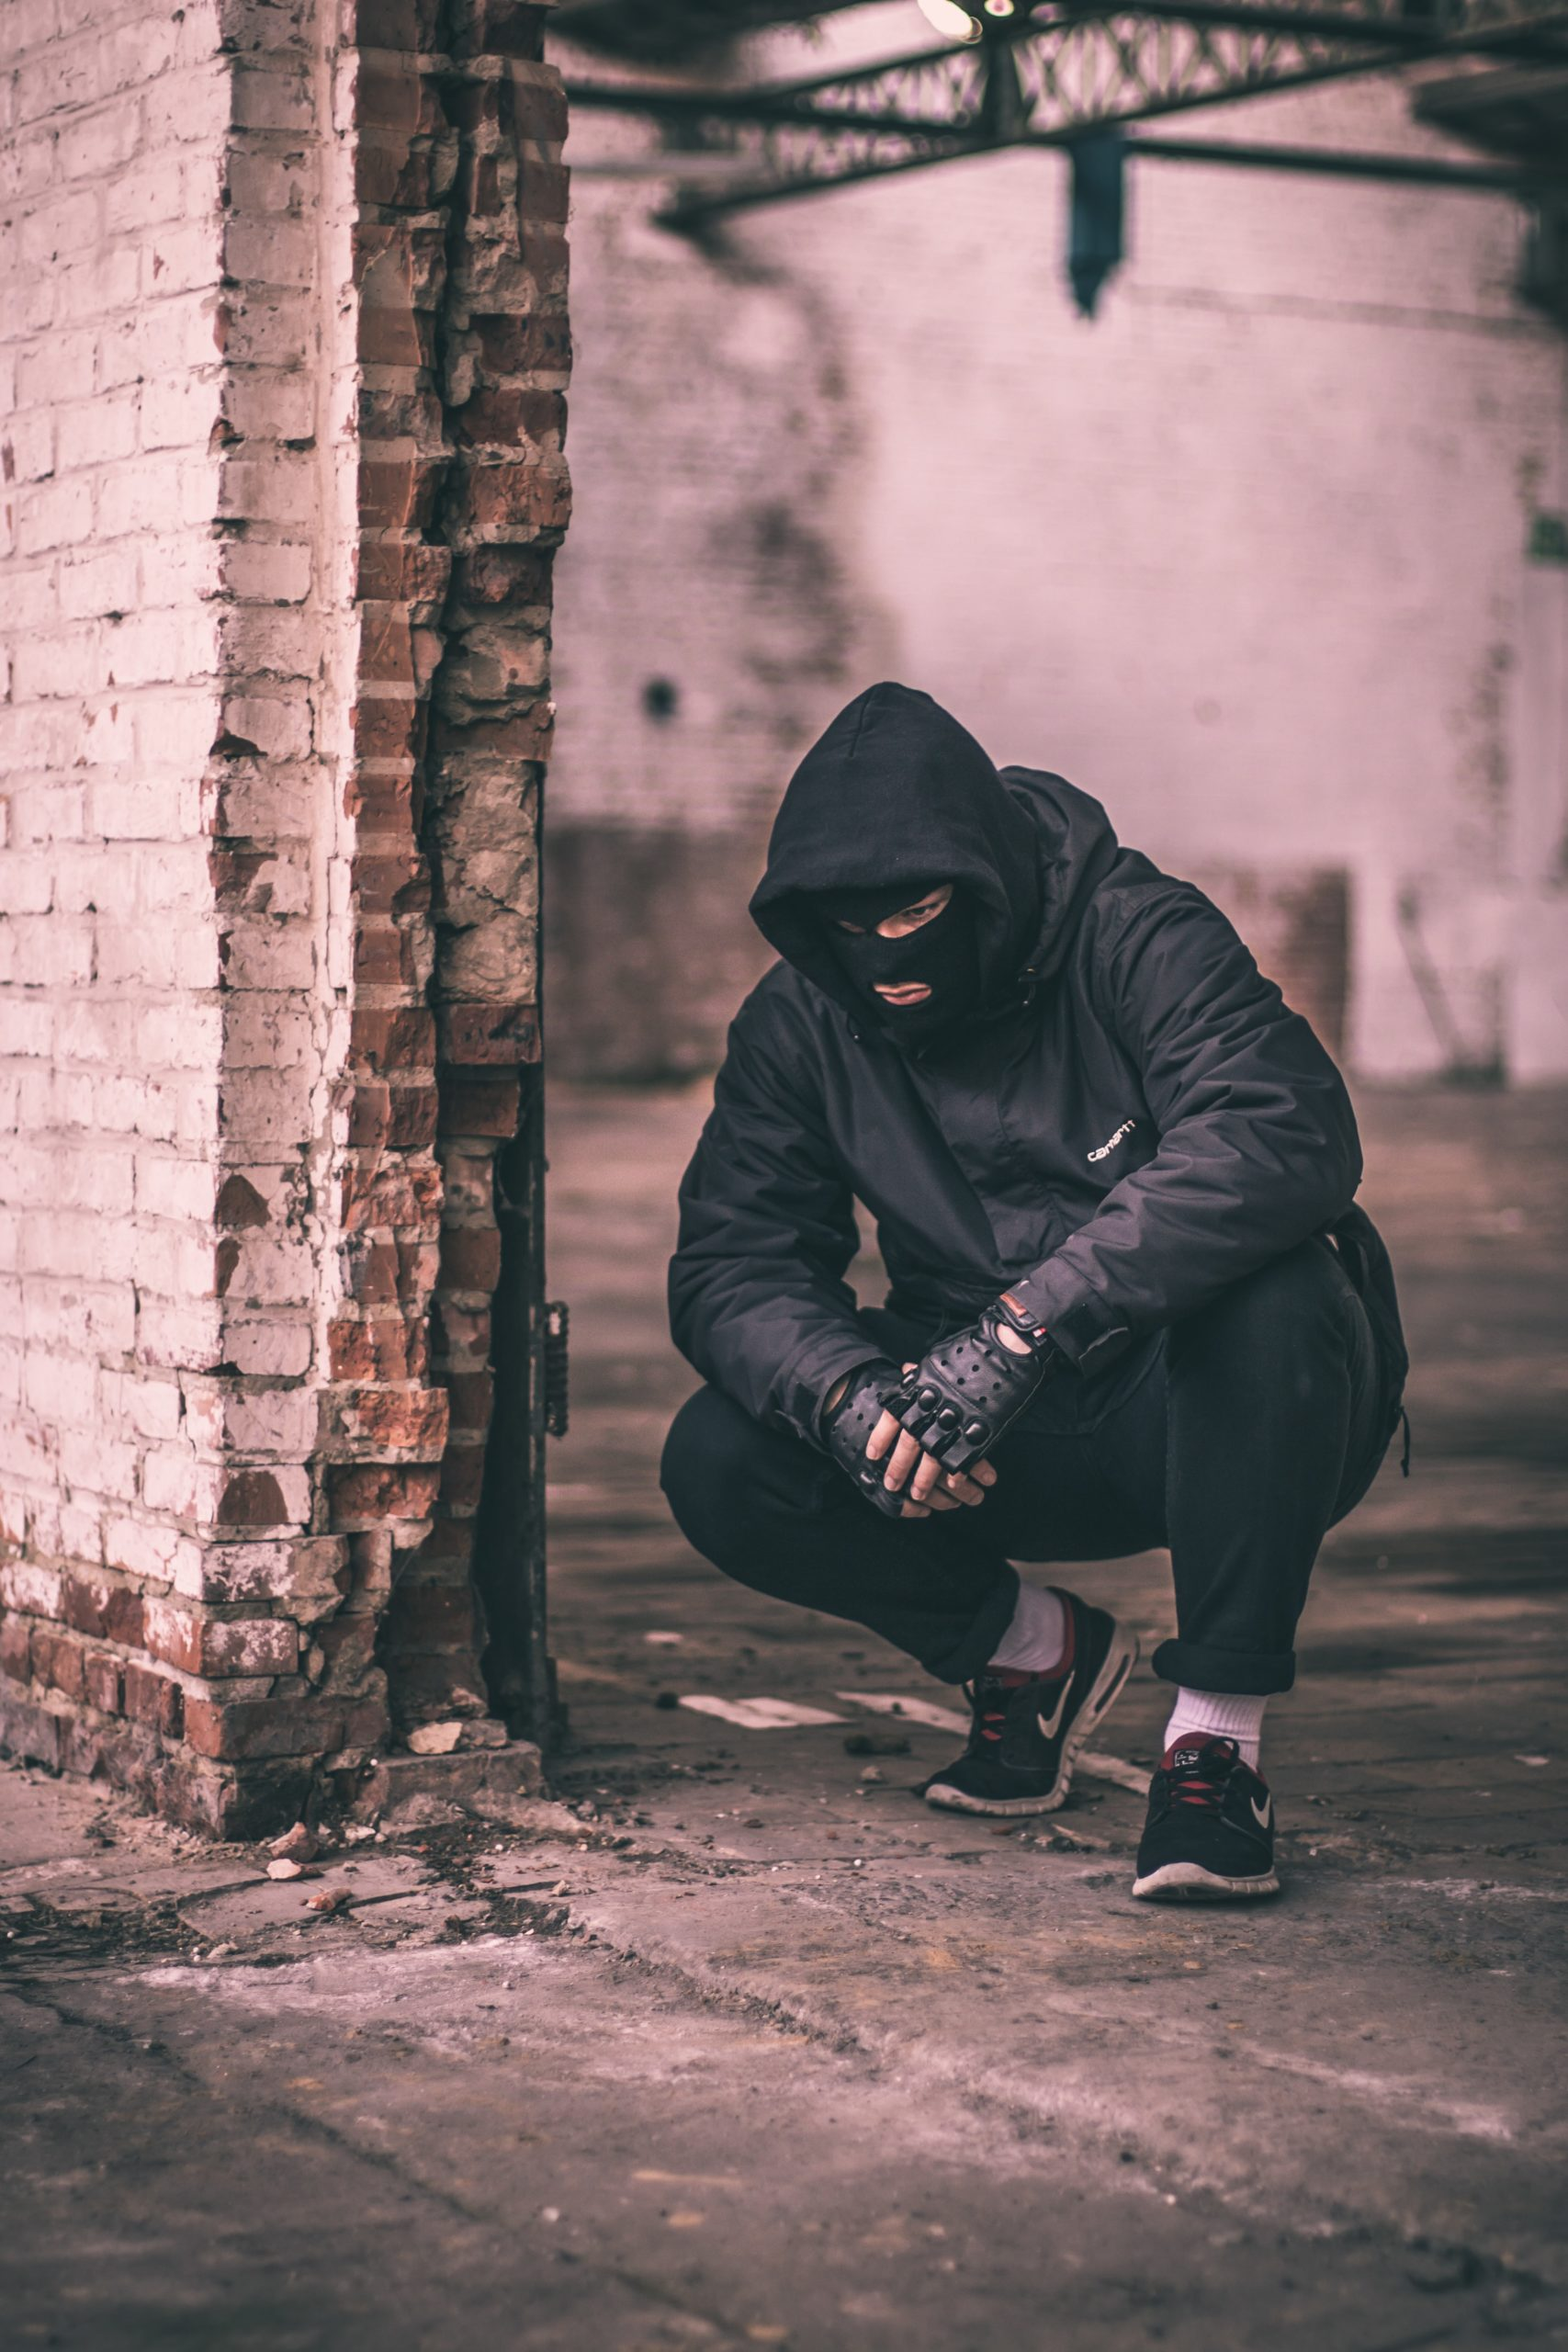 A man in a balaclava and hooded top crouching by a brick wall